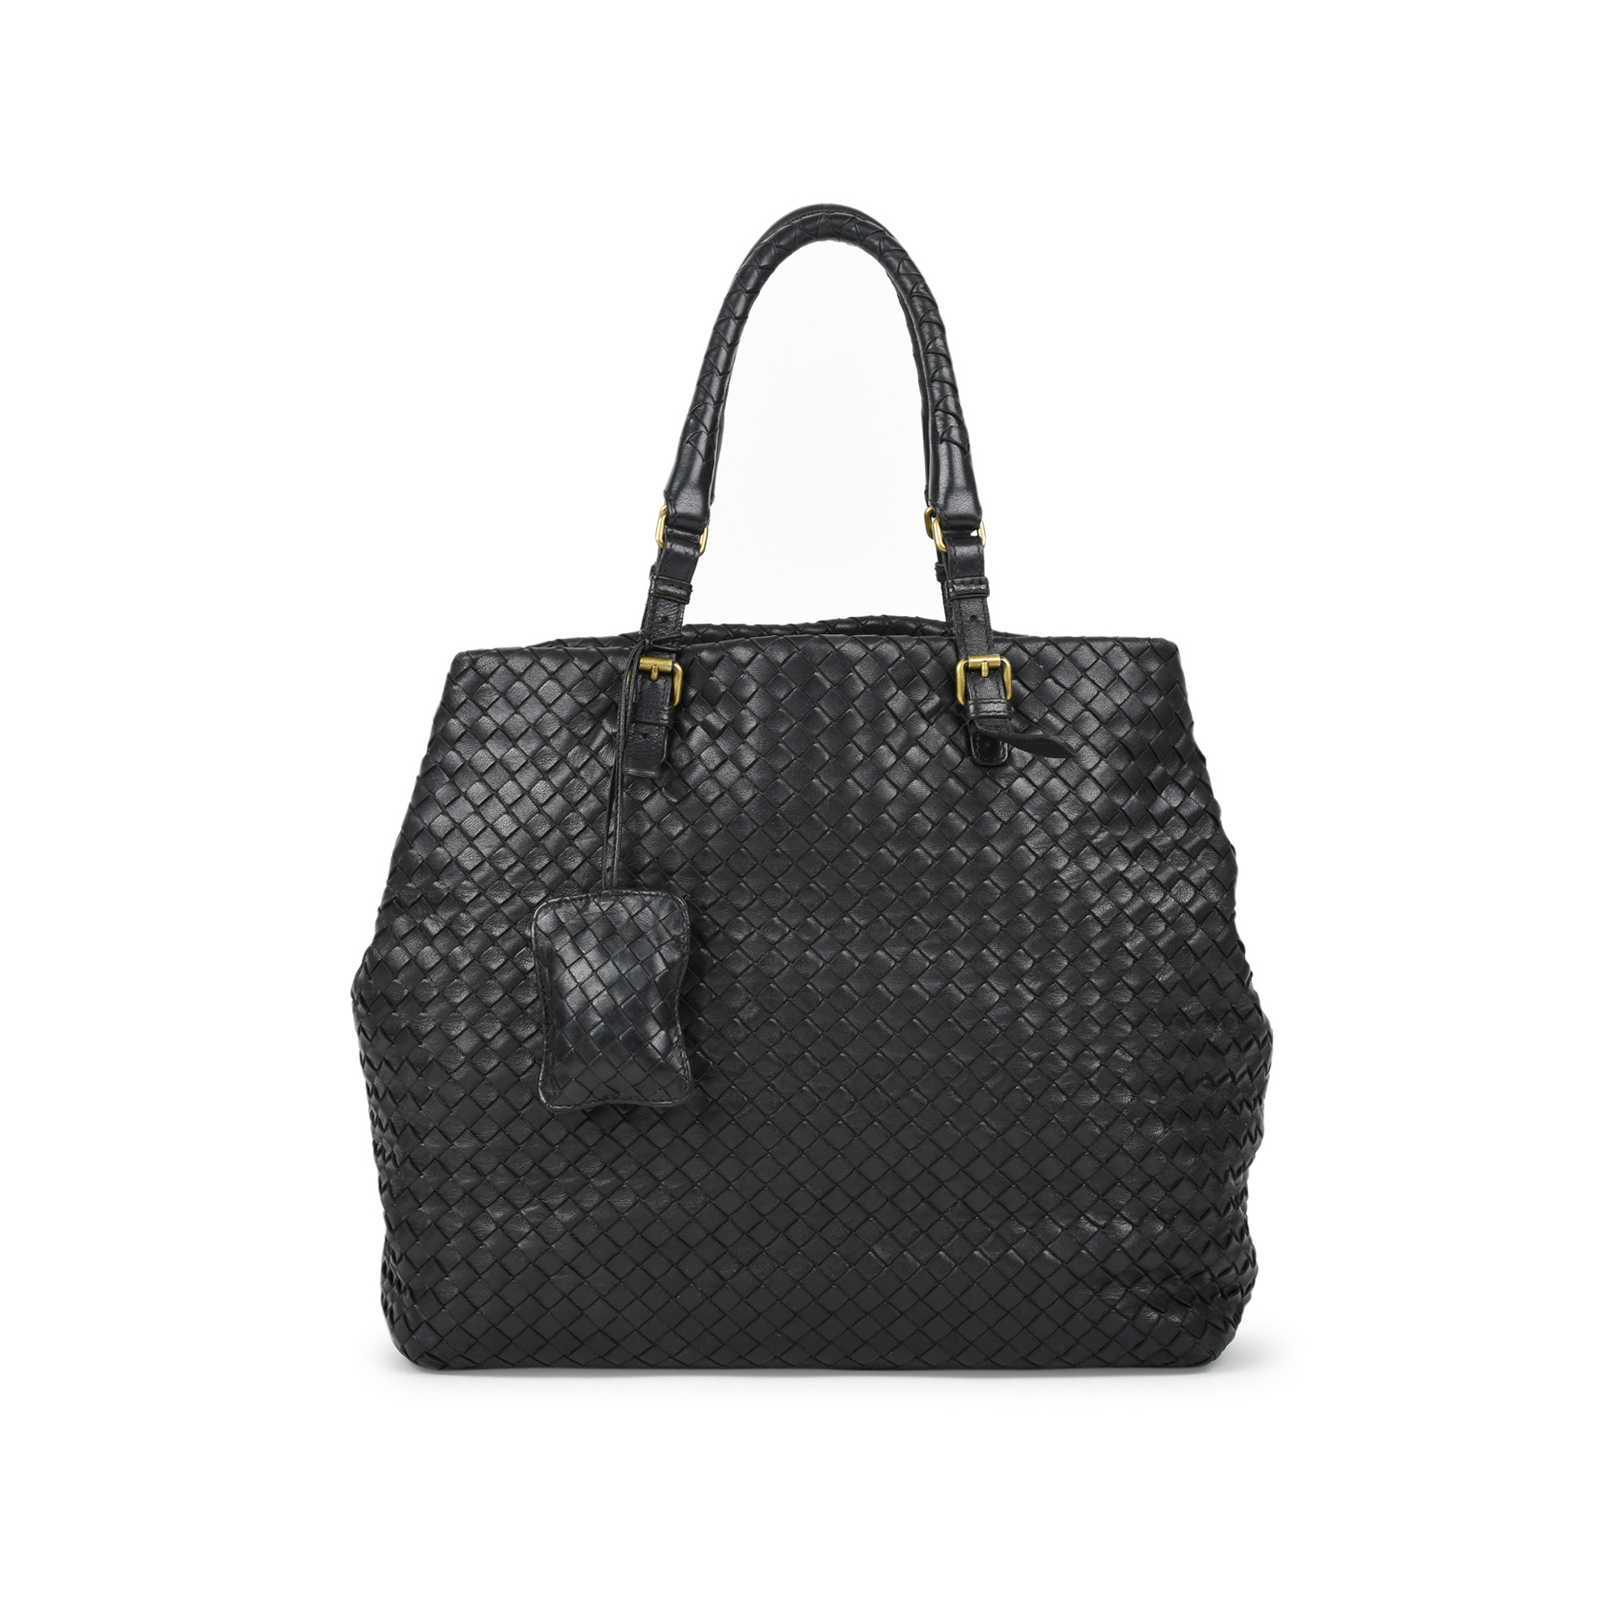 fb662a2390 Authentic Second Hand Bottega Veneta Intrecciato Leather Tote  (PSS-472-00009) ...